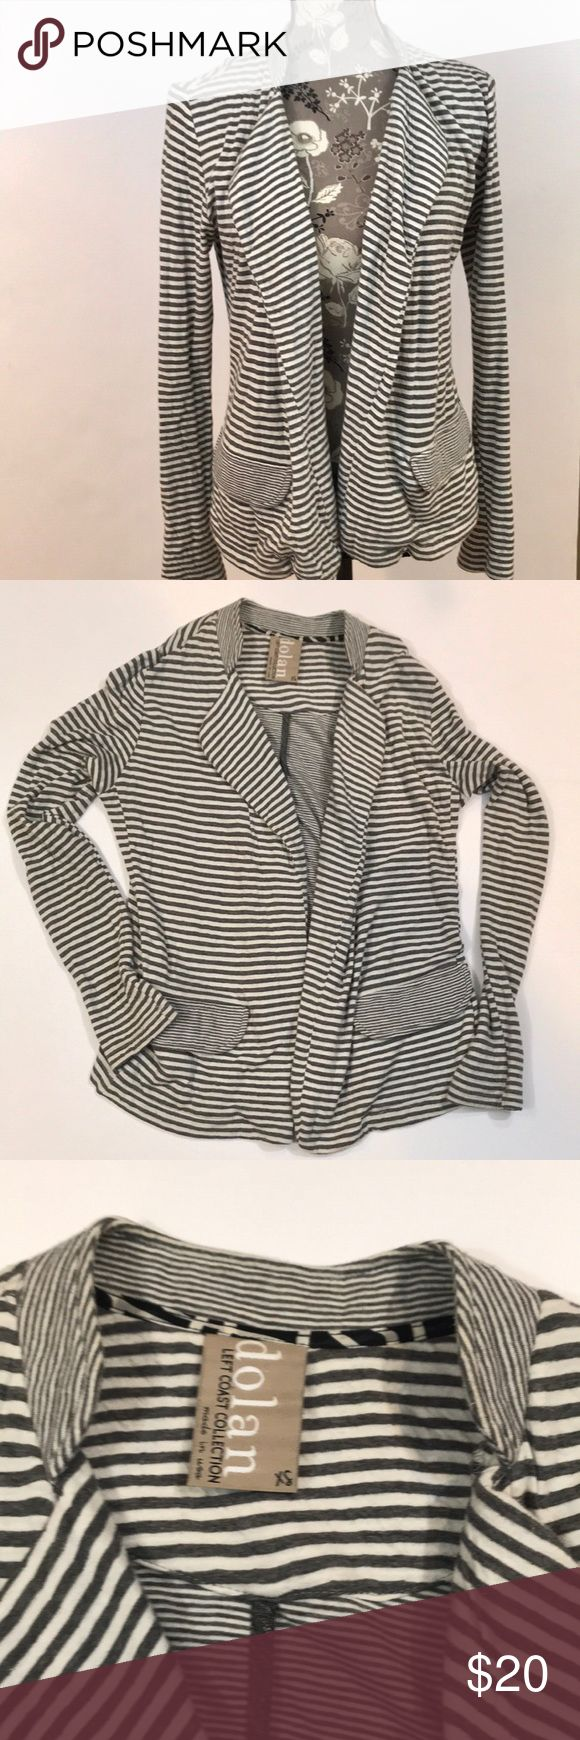 "Anthropologie Dolan Left Coast Striped Blazer Adorable Anthropologie Dolan Left Coast Collection Striped Blazer size XS. Great preloved condition. Super soft 50% cotton and 50% rayon gray striped open blazer. Cute with jeans. Approximately 17"" from underarm to underarm and 24"" long. Some minor wear. Anthropologie Jackets & Coats Blazers"